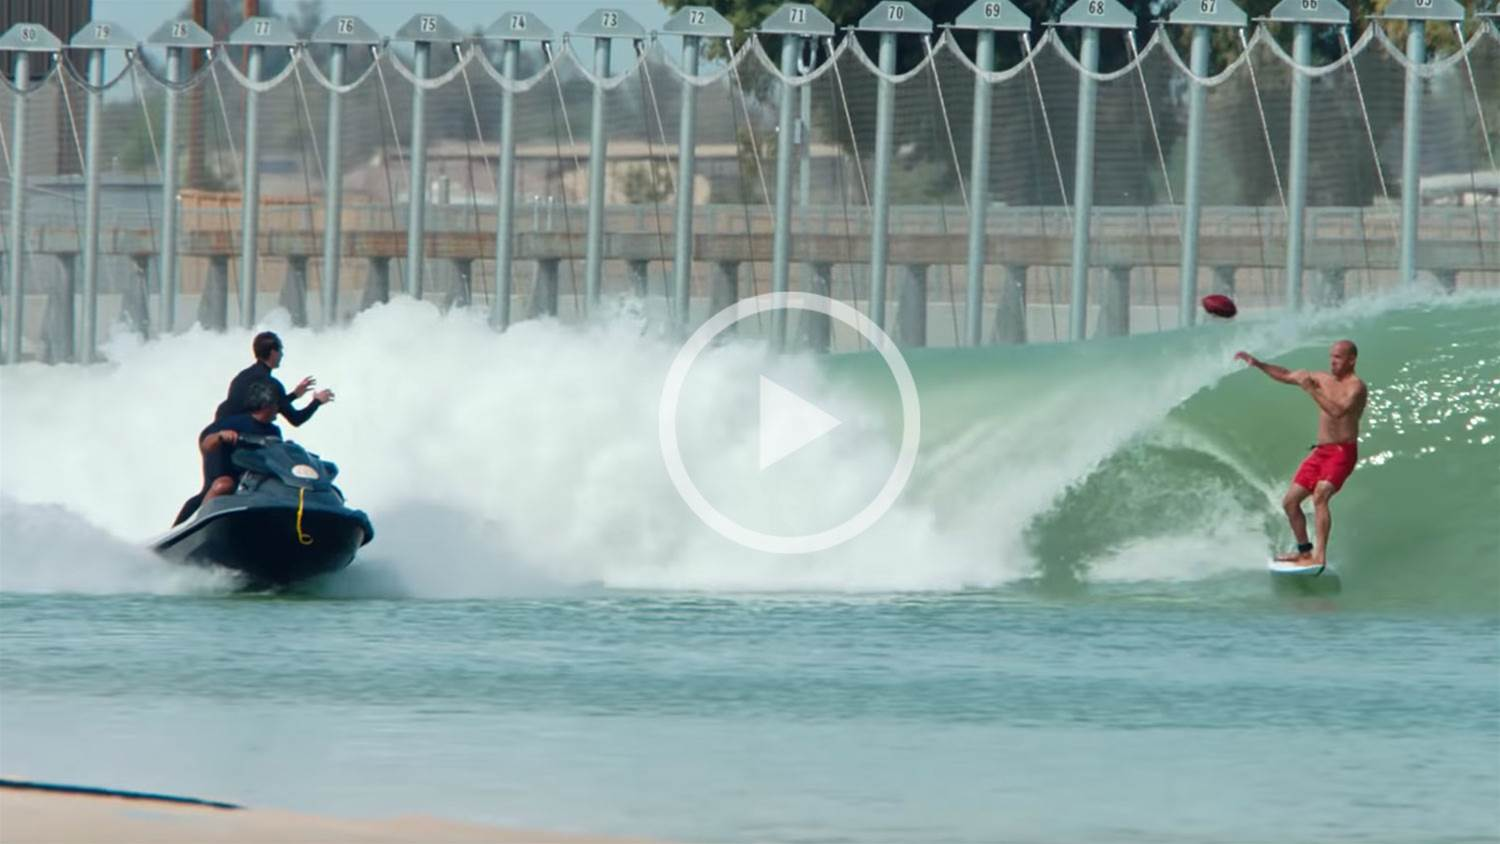 Watch: NFL and surfing bathe together